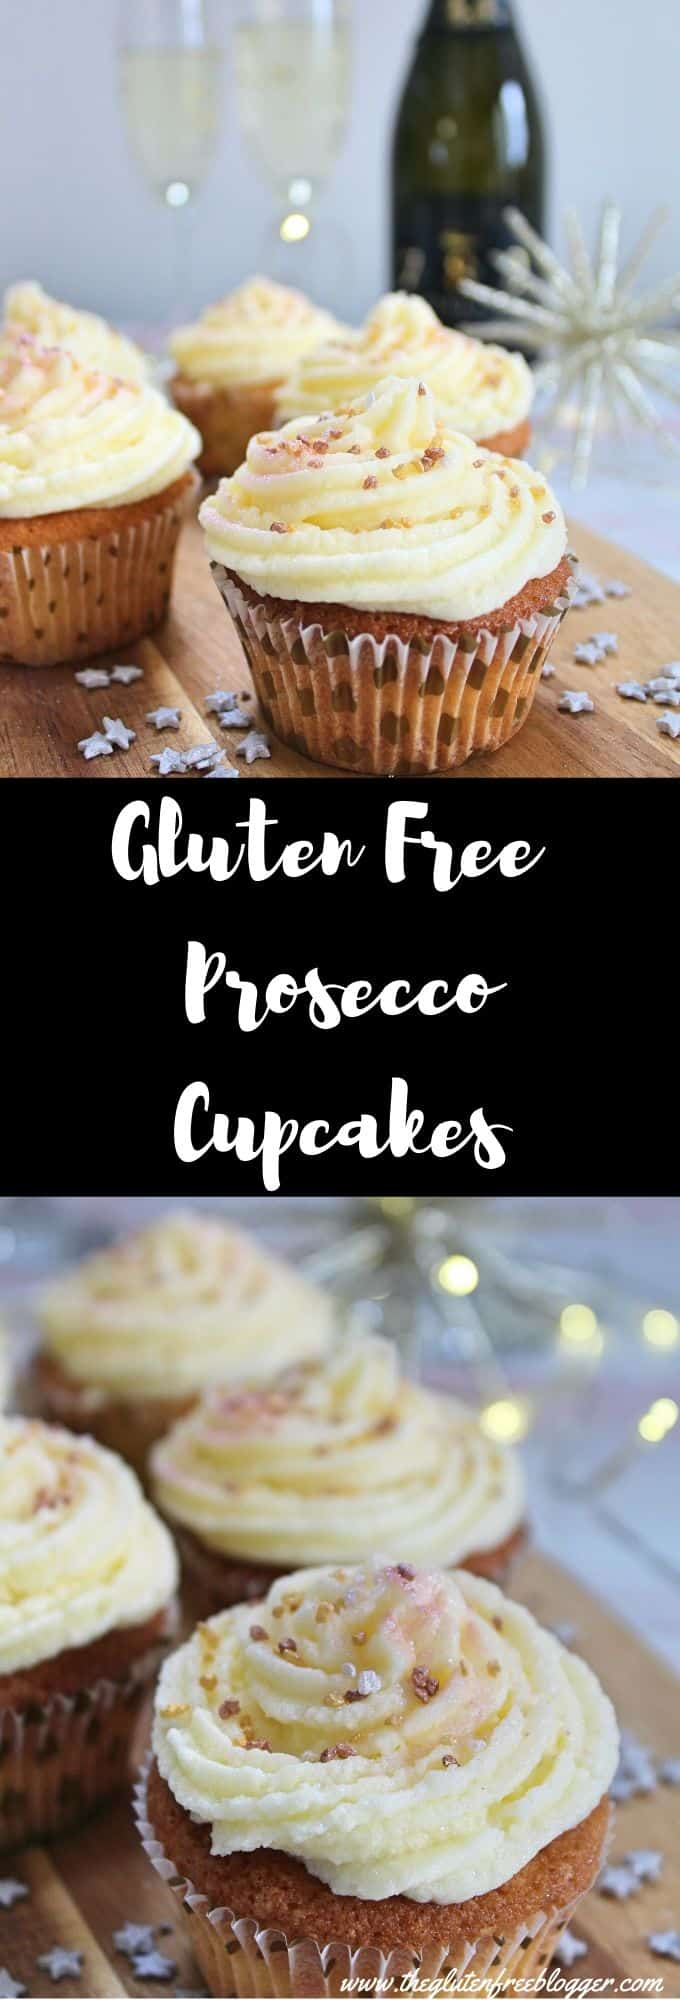 gluten free prosecco cupcakes recipe - christmas new year party bakes ideas cake coeliac friendly